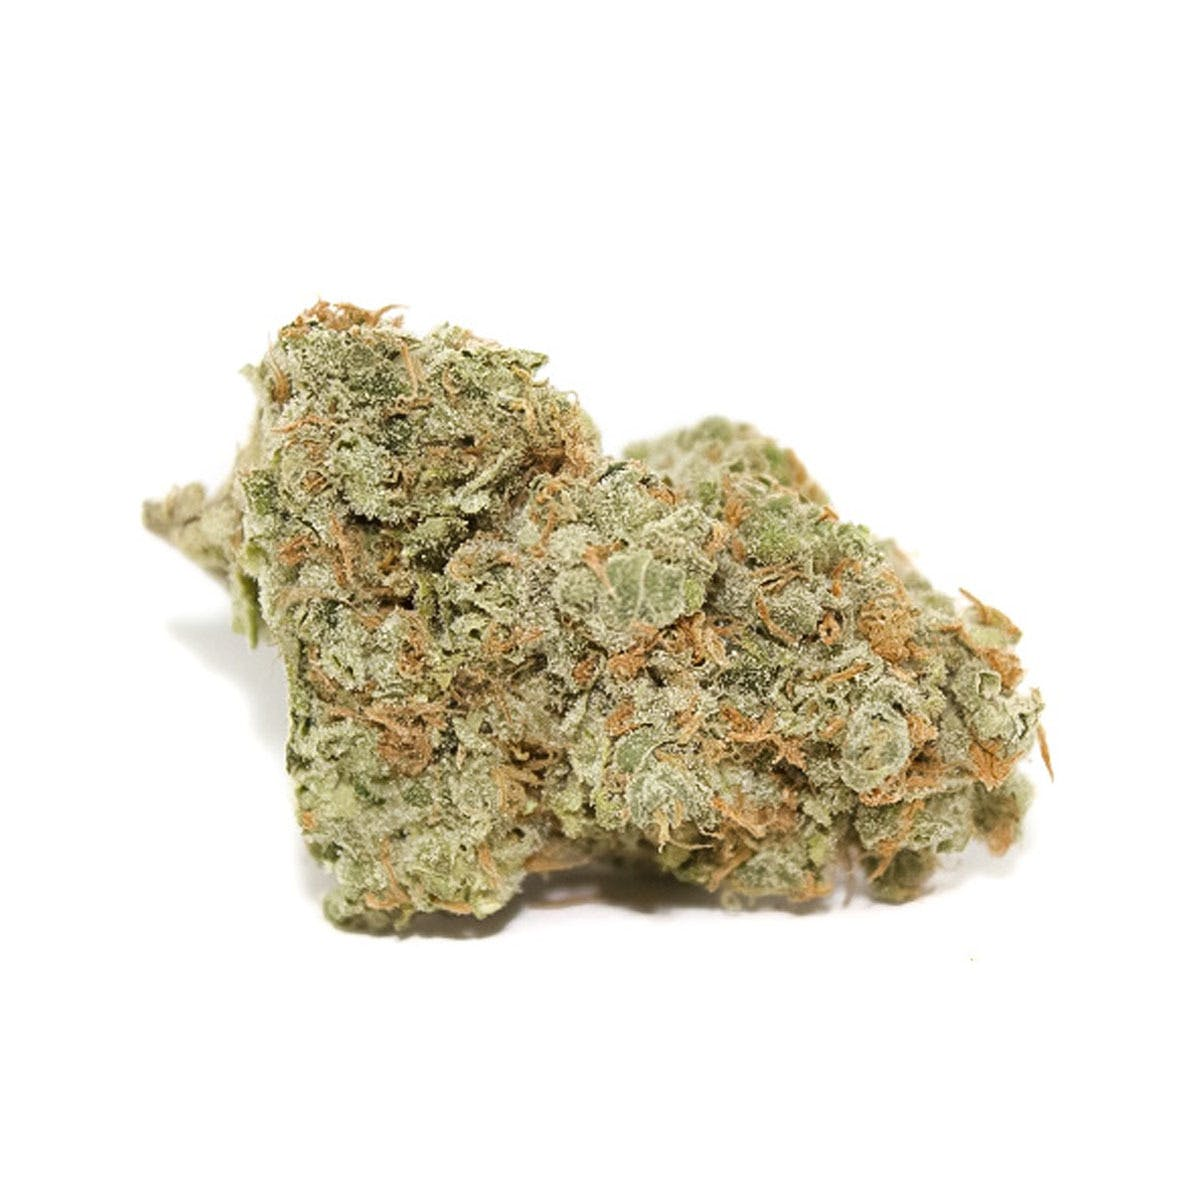 marijuana-dispensaries-verde-natural-boulder-recreational-in-boulder-cheese-train-haze